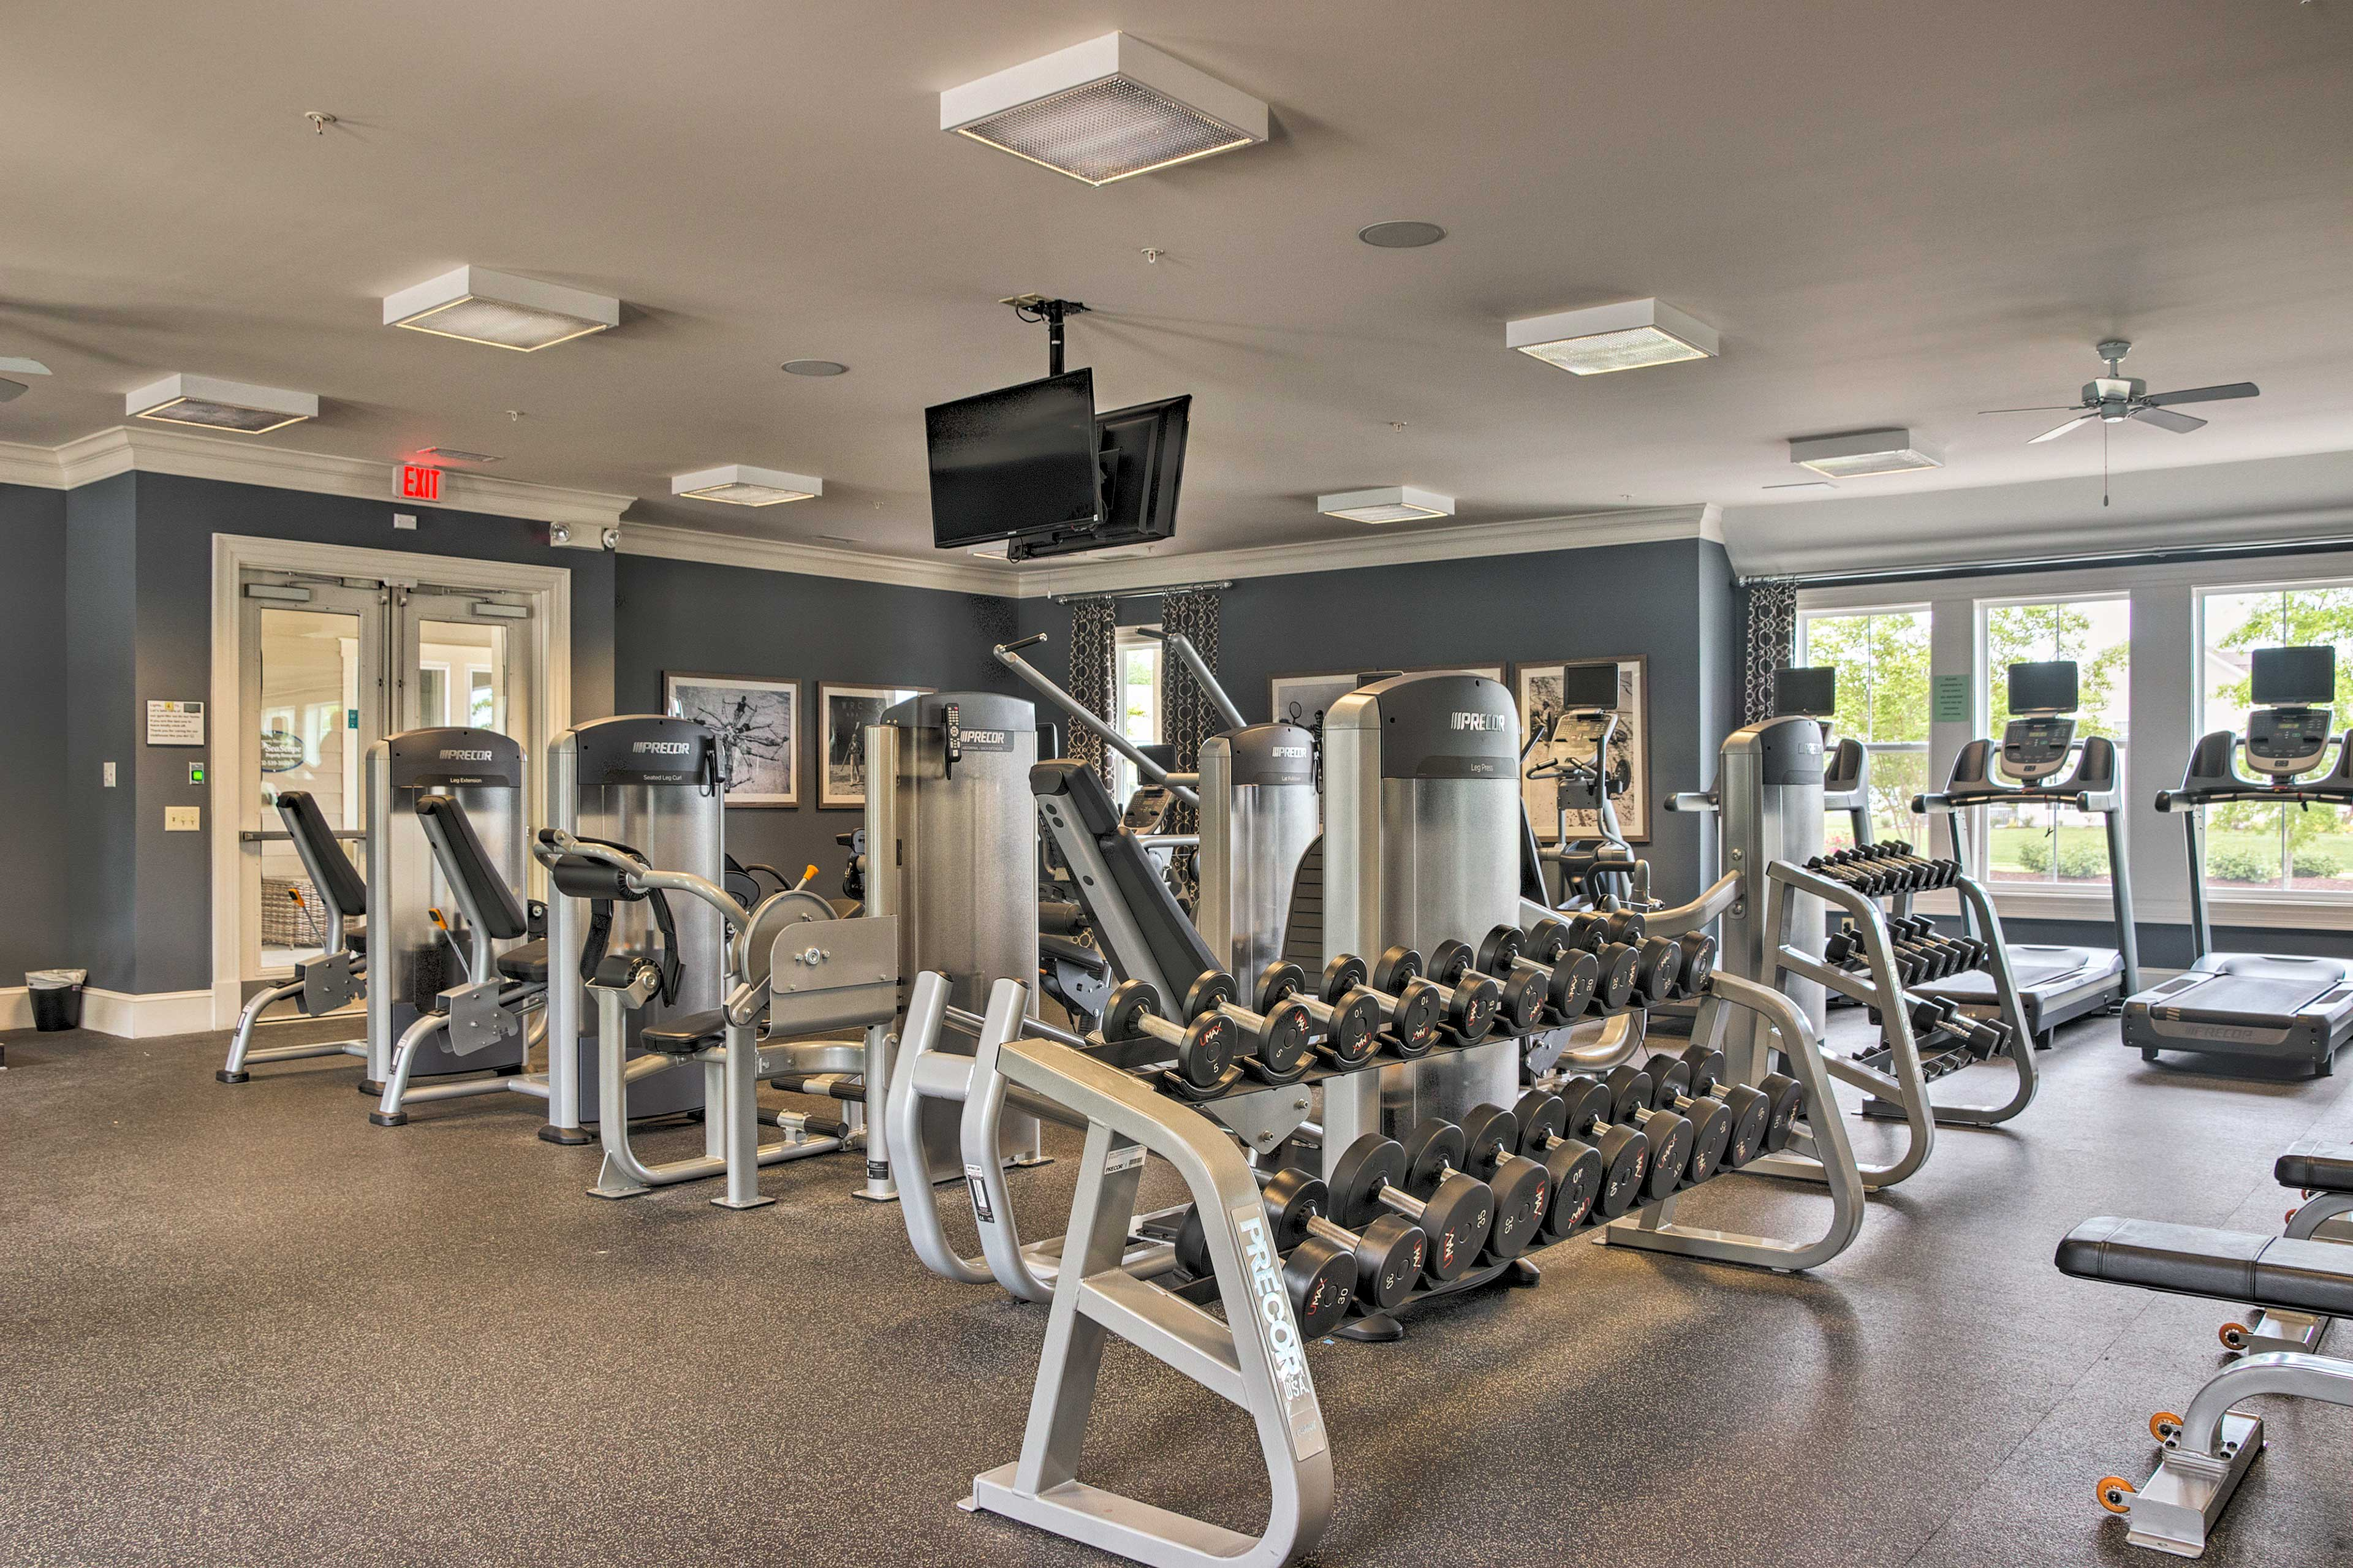 Maintain your gains in the on-site fitness center.